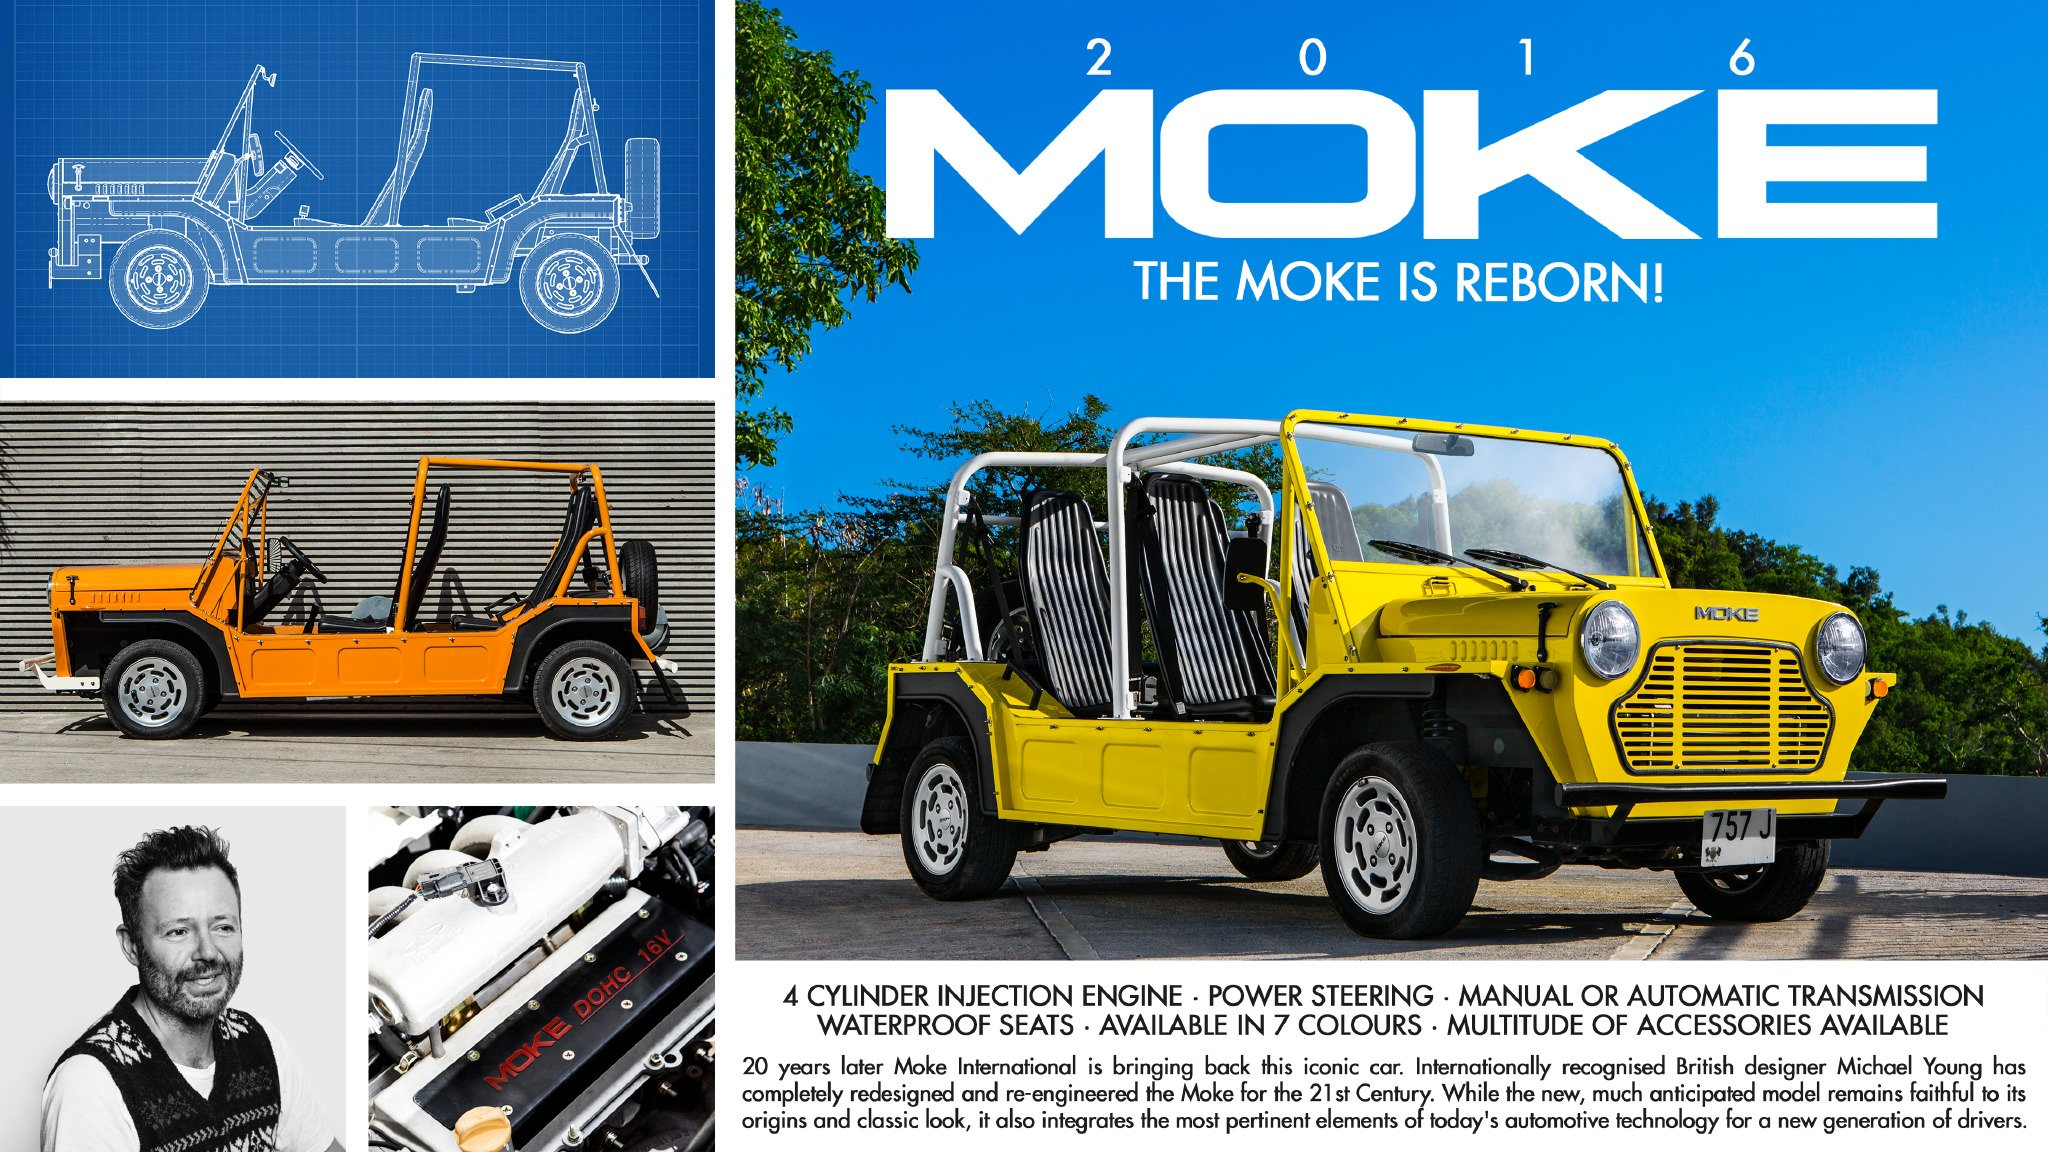 THE MOKE IS REBORN